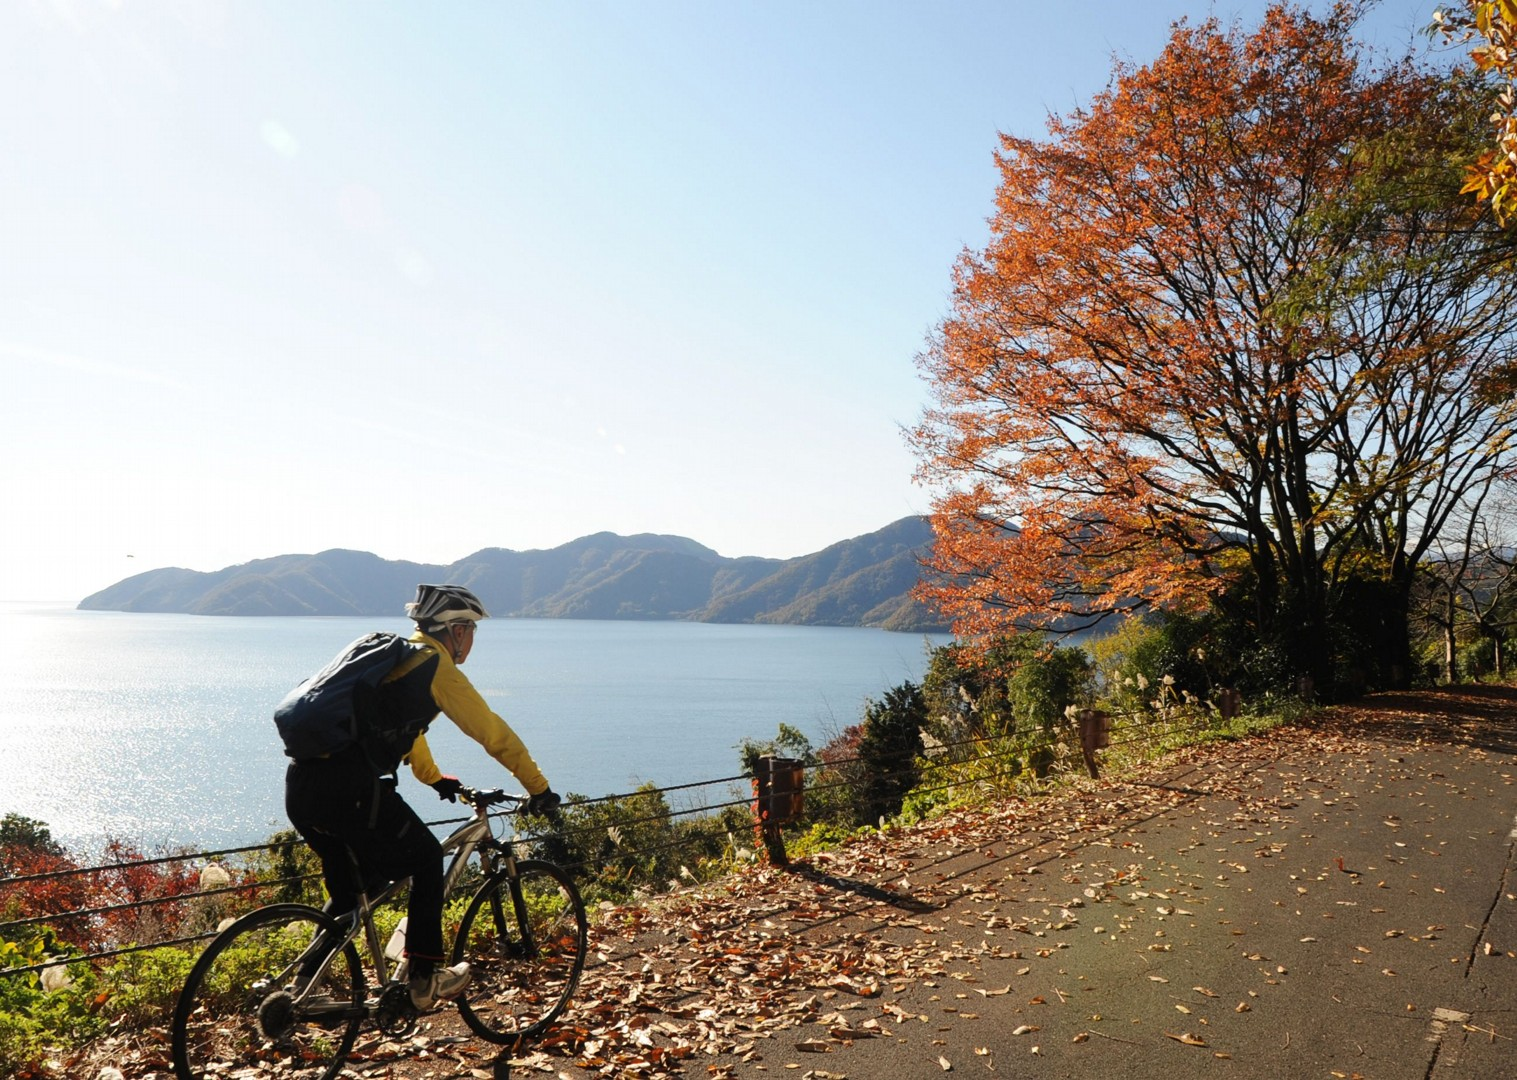 lake-kawaguchi-japan-fuji-to-kyoto-cycling-holiday-cycling-adventure.JPG - Japan - Classic Japan - Fuji to Kyoto - Cycling Holiday - Cycling Adventures